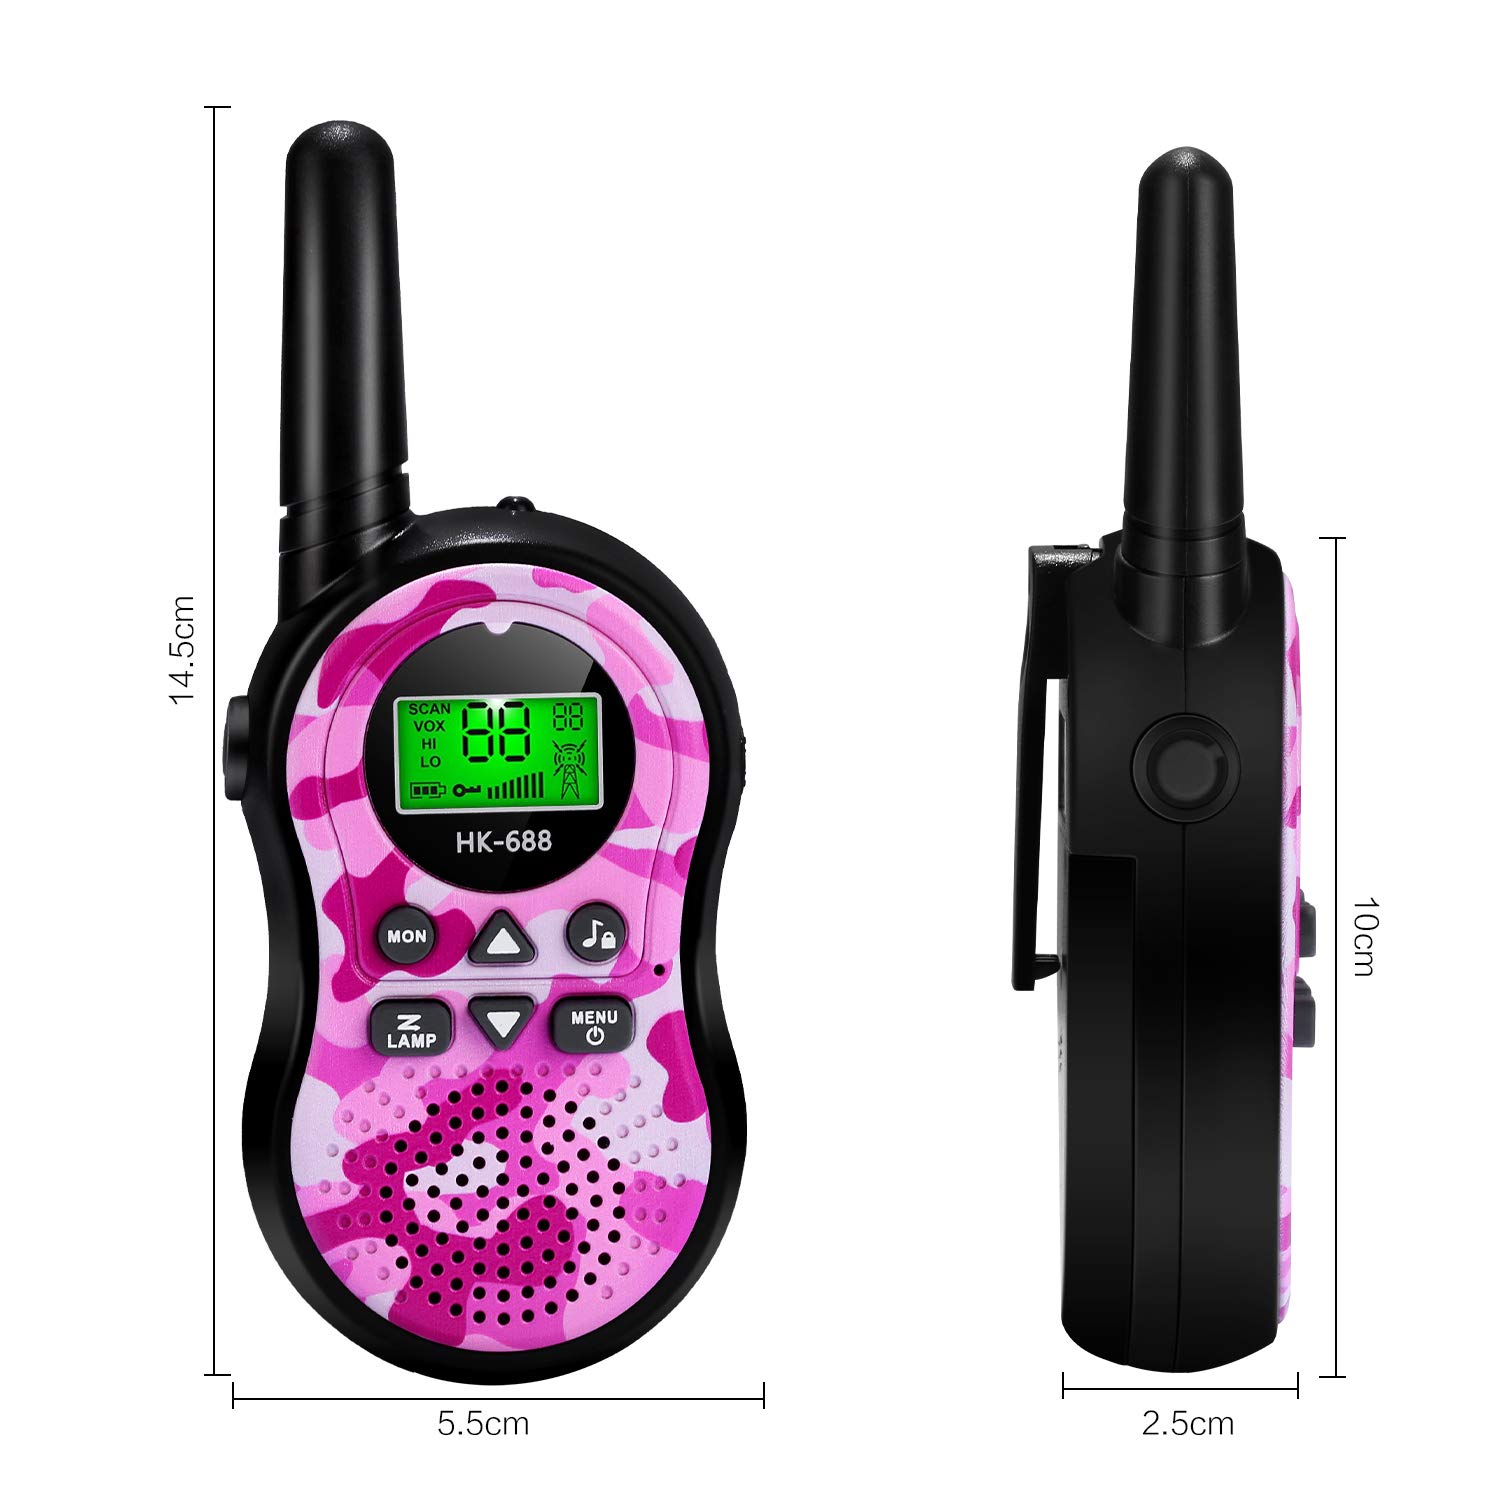 SeaMeng walkie talkies for Kids Best Gifts for boy Girls Age 3 4 5 6 7 8 9 Toys, 22 Channel 2 Way Radio 3 Mile Long Range, Outdoor Adventures Camping Hiking by SeaMeng (Image #7)